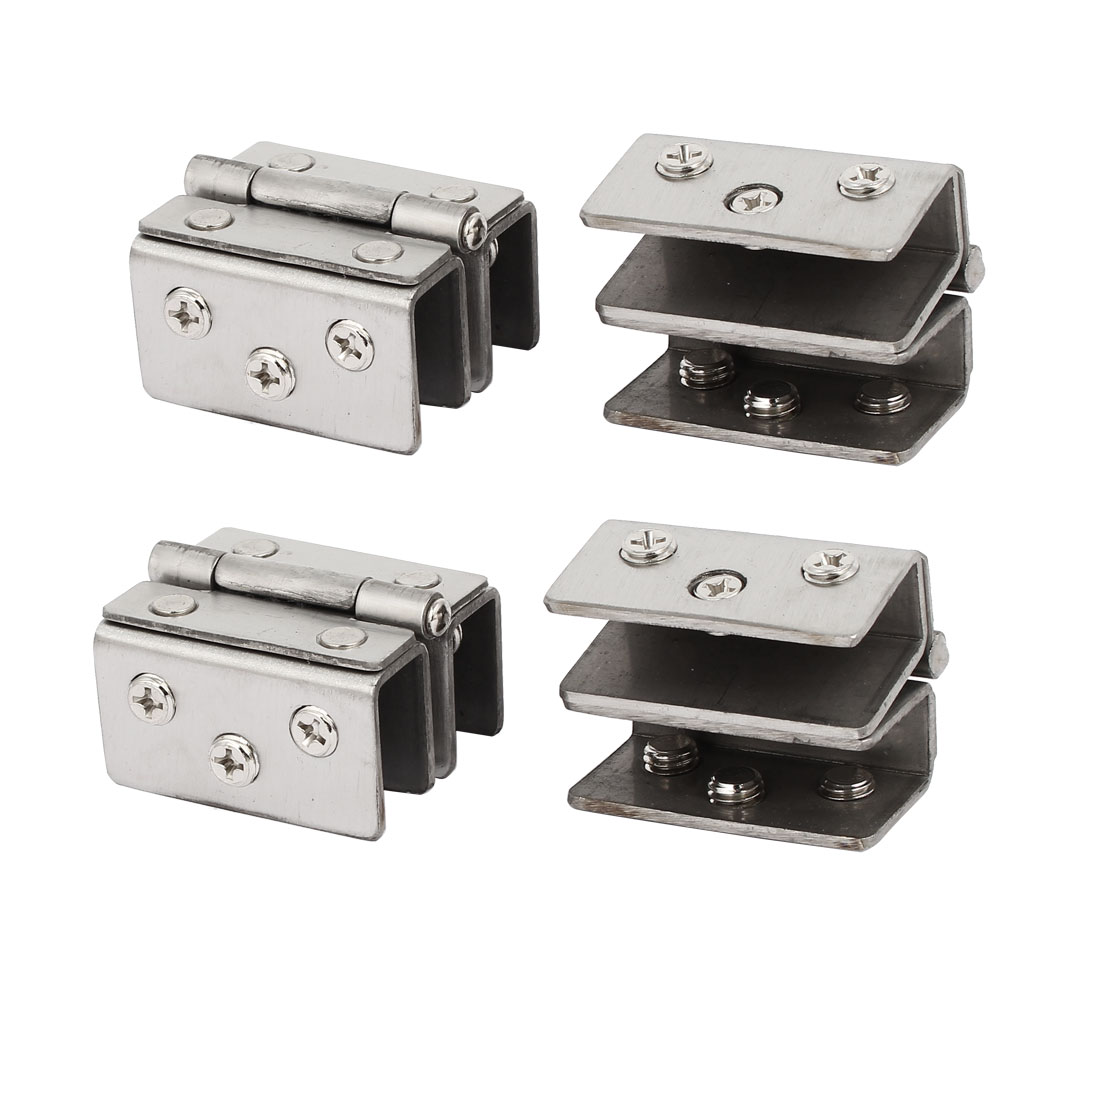 Bathroom Cabinet Door Glass to Glass Hinge Clamp Clips 4pcs for 8mm-10mm Glass